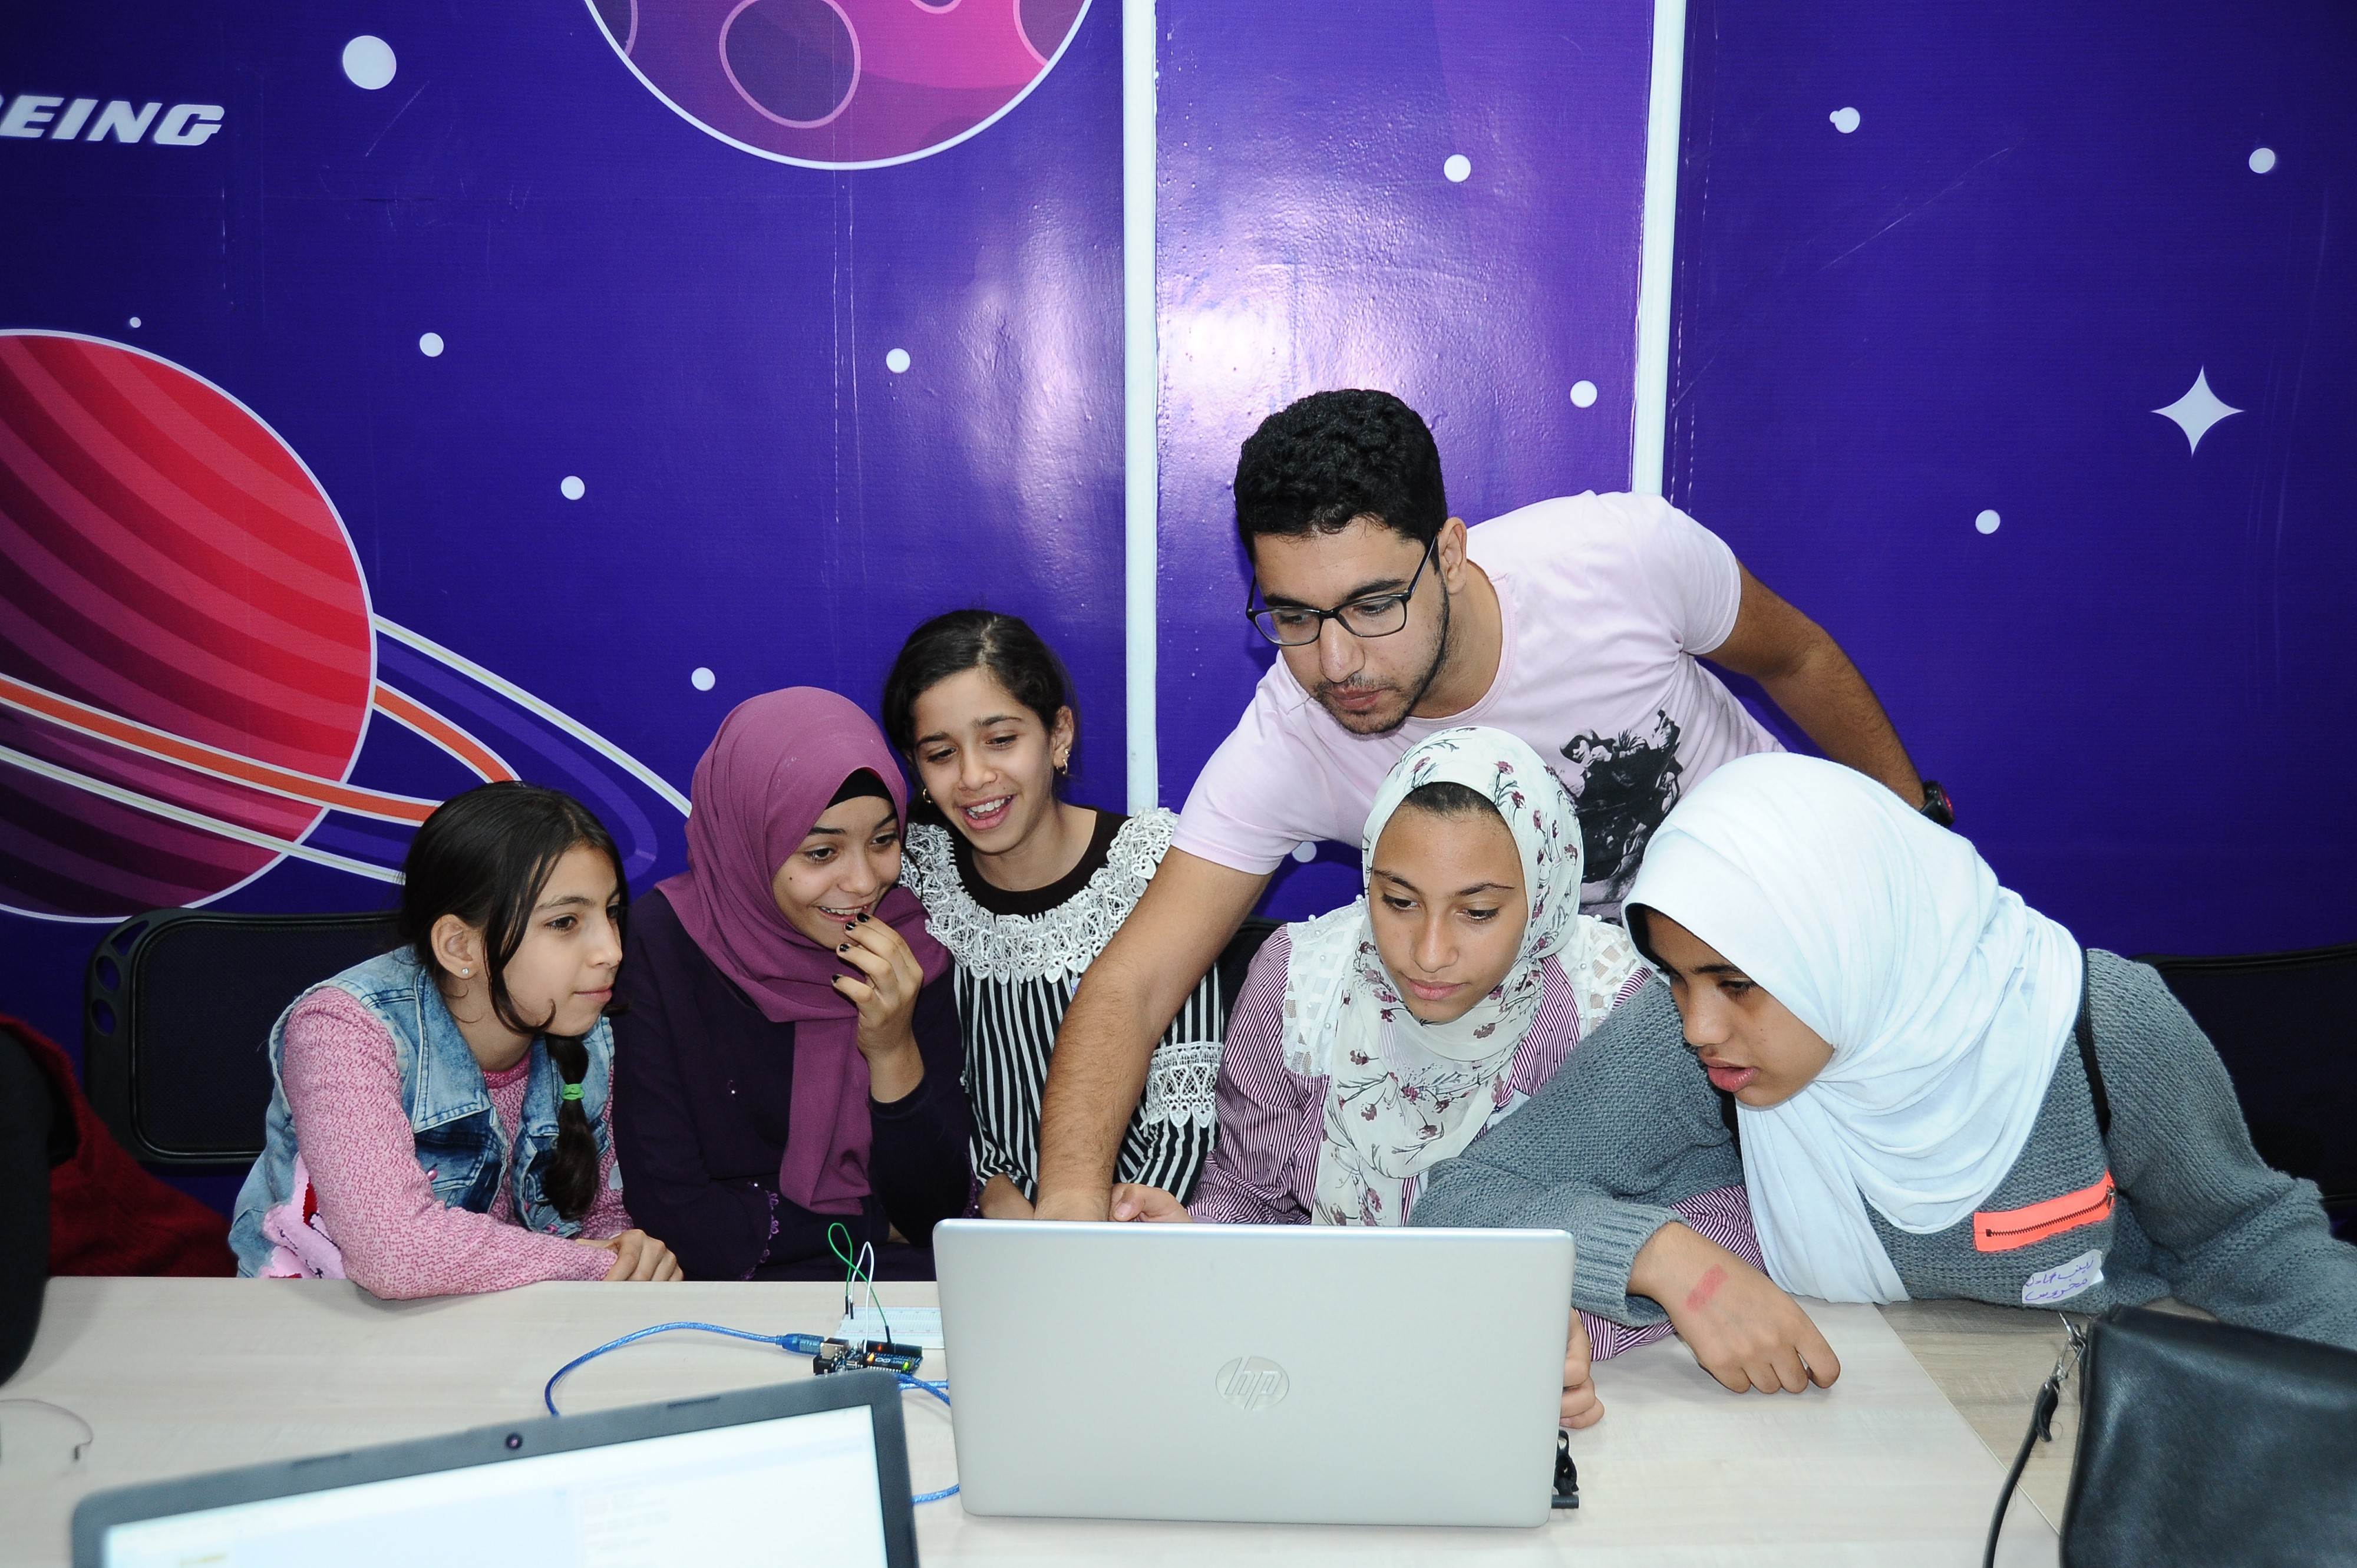 Six students work at a laptop with a mural of the solar system behind them.